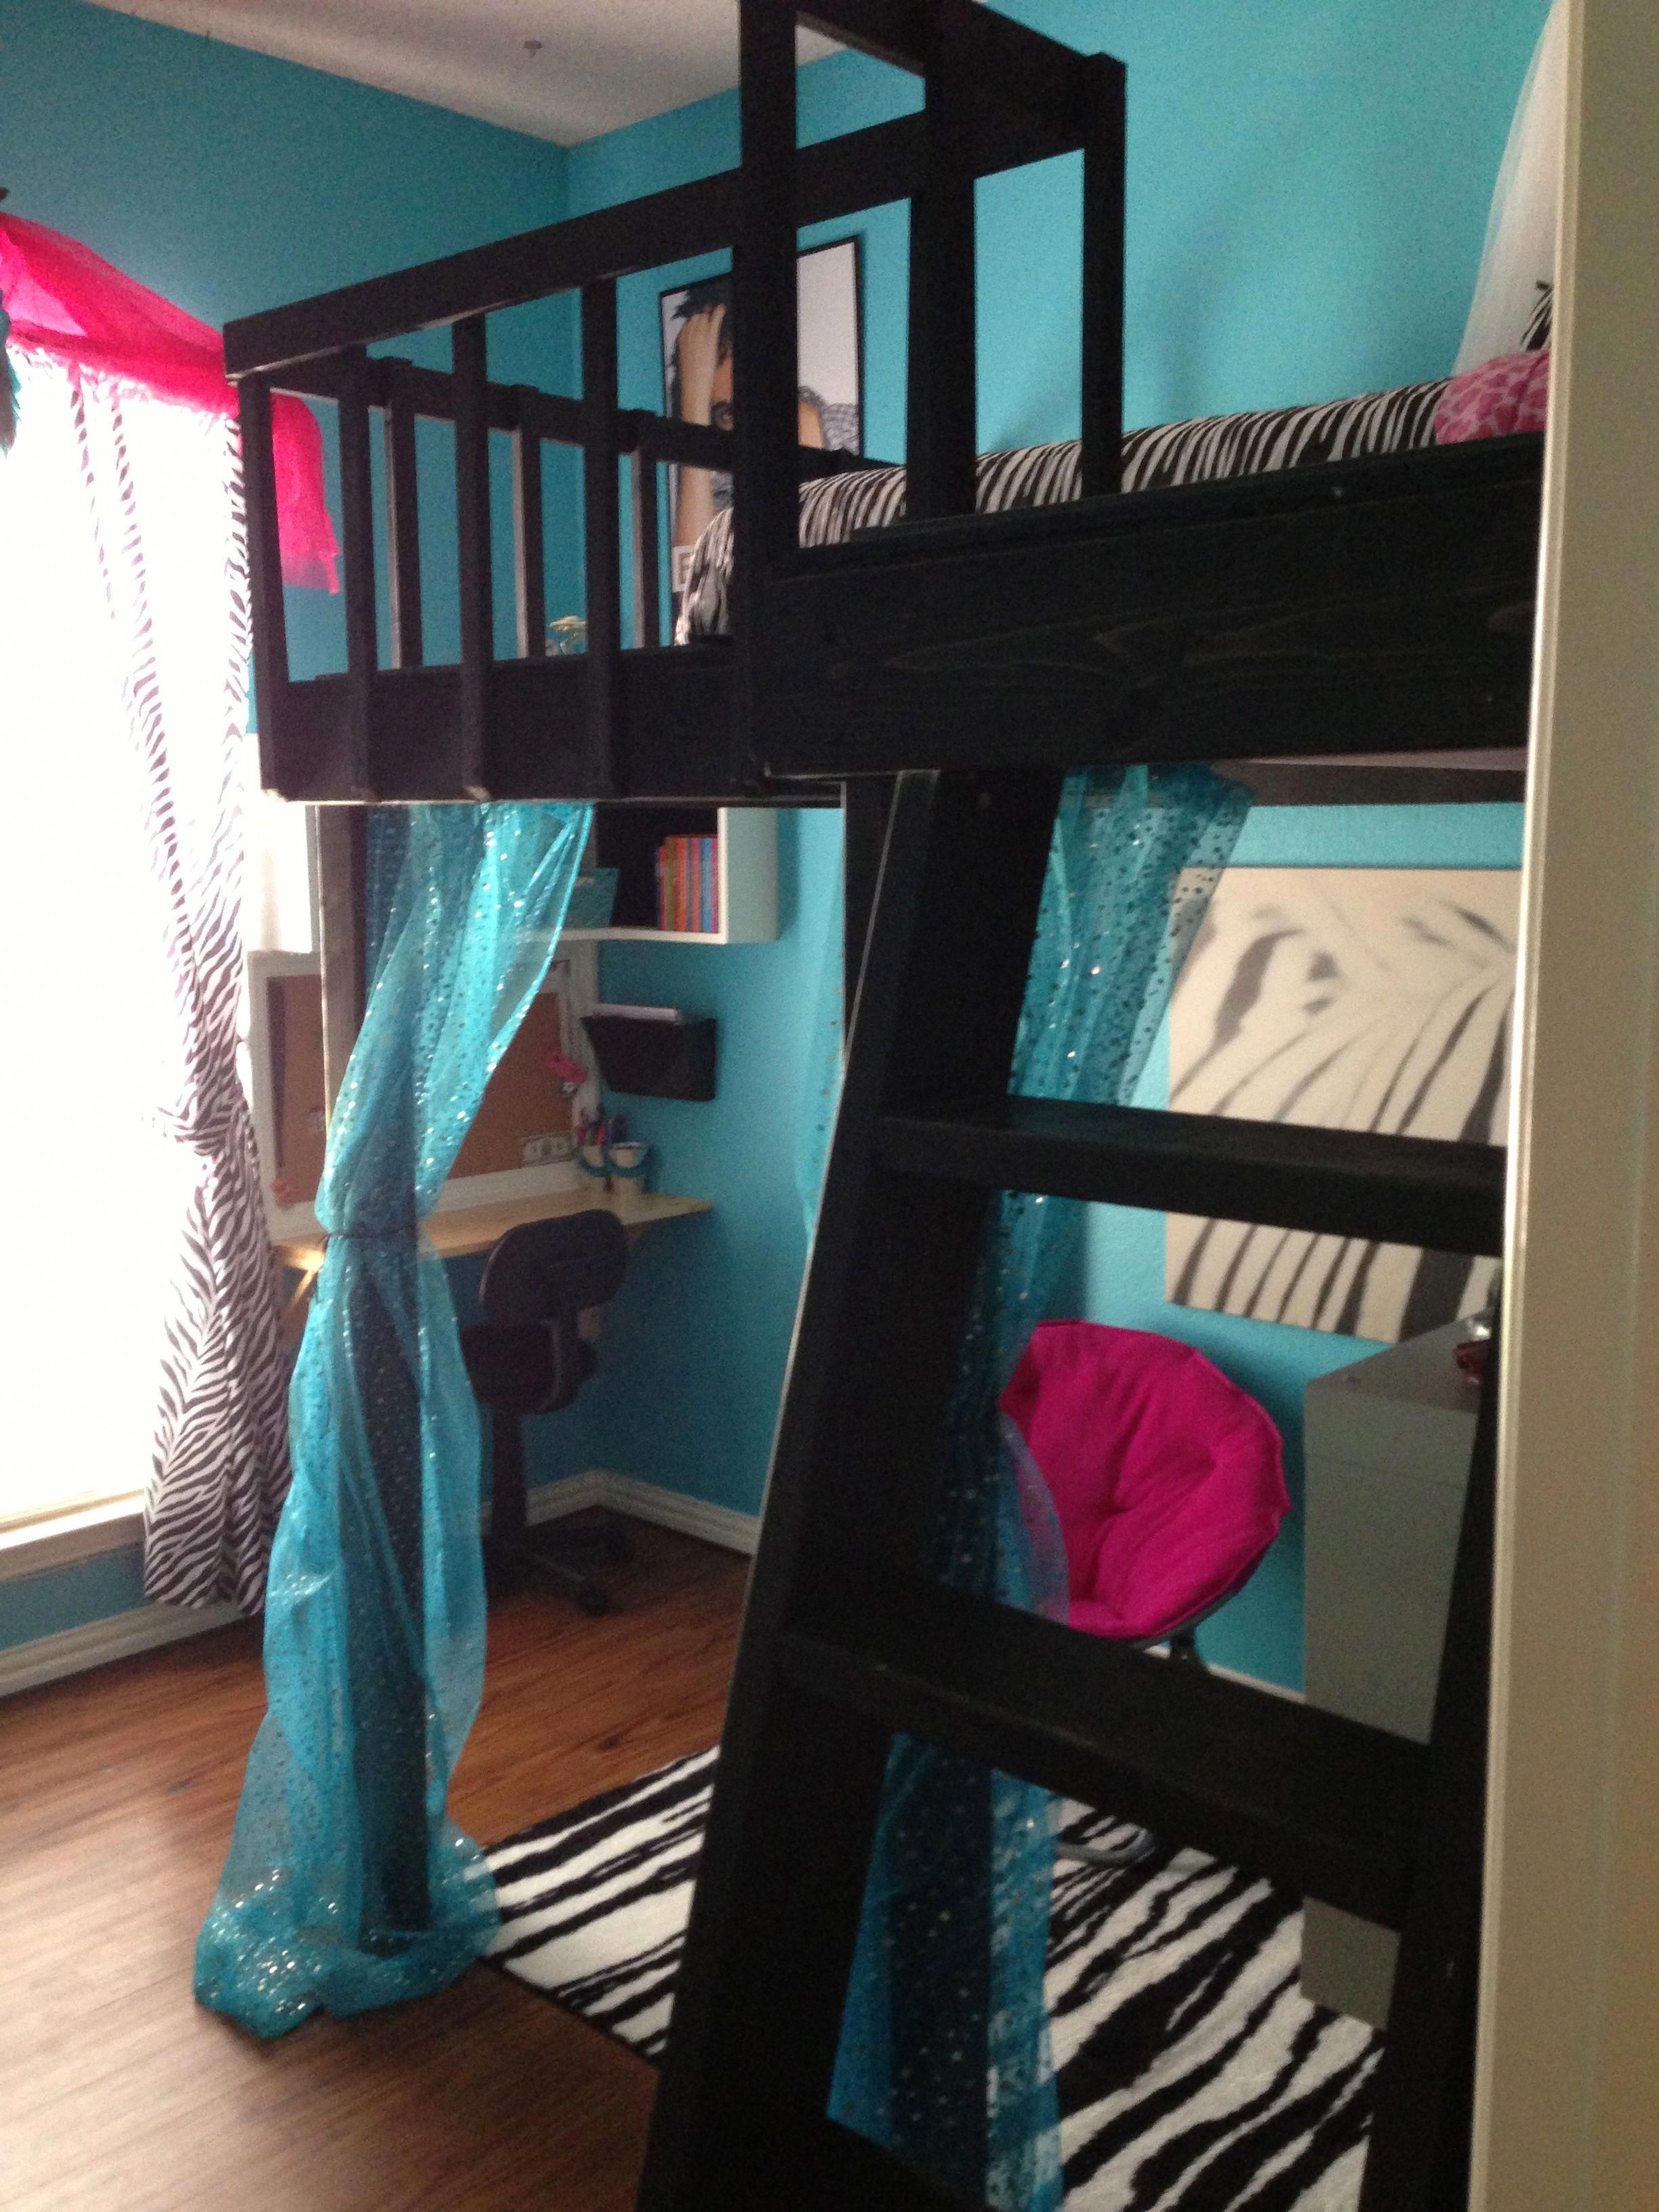 Loft bedroom with bathroom  DIY Loft  bedroom remodel diyteengirlbedroomsloftbeds  Teen Girl